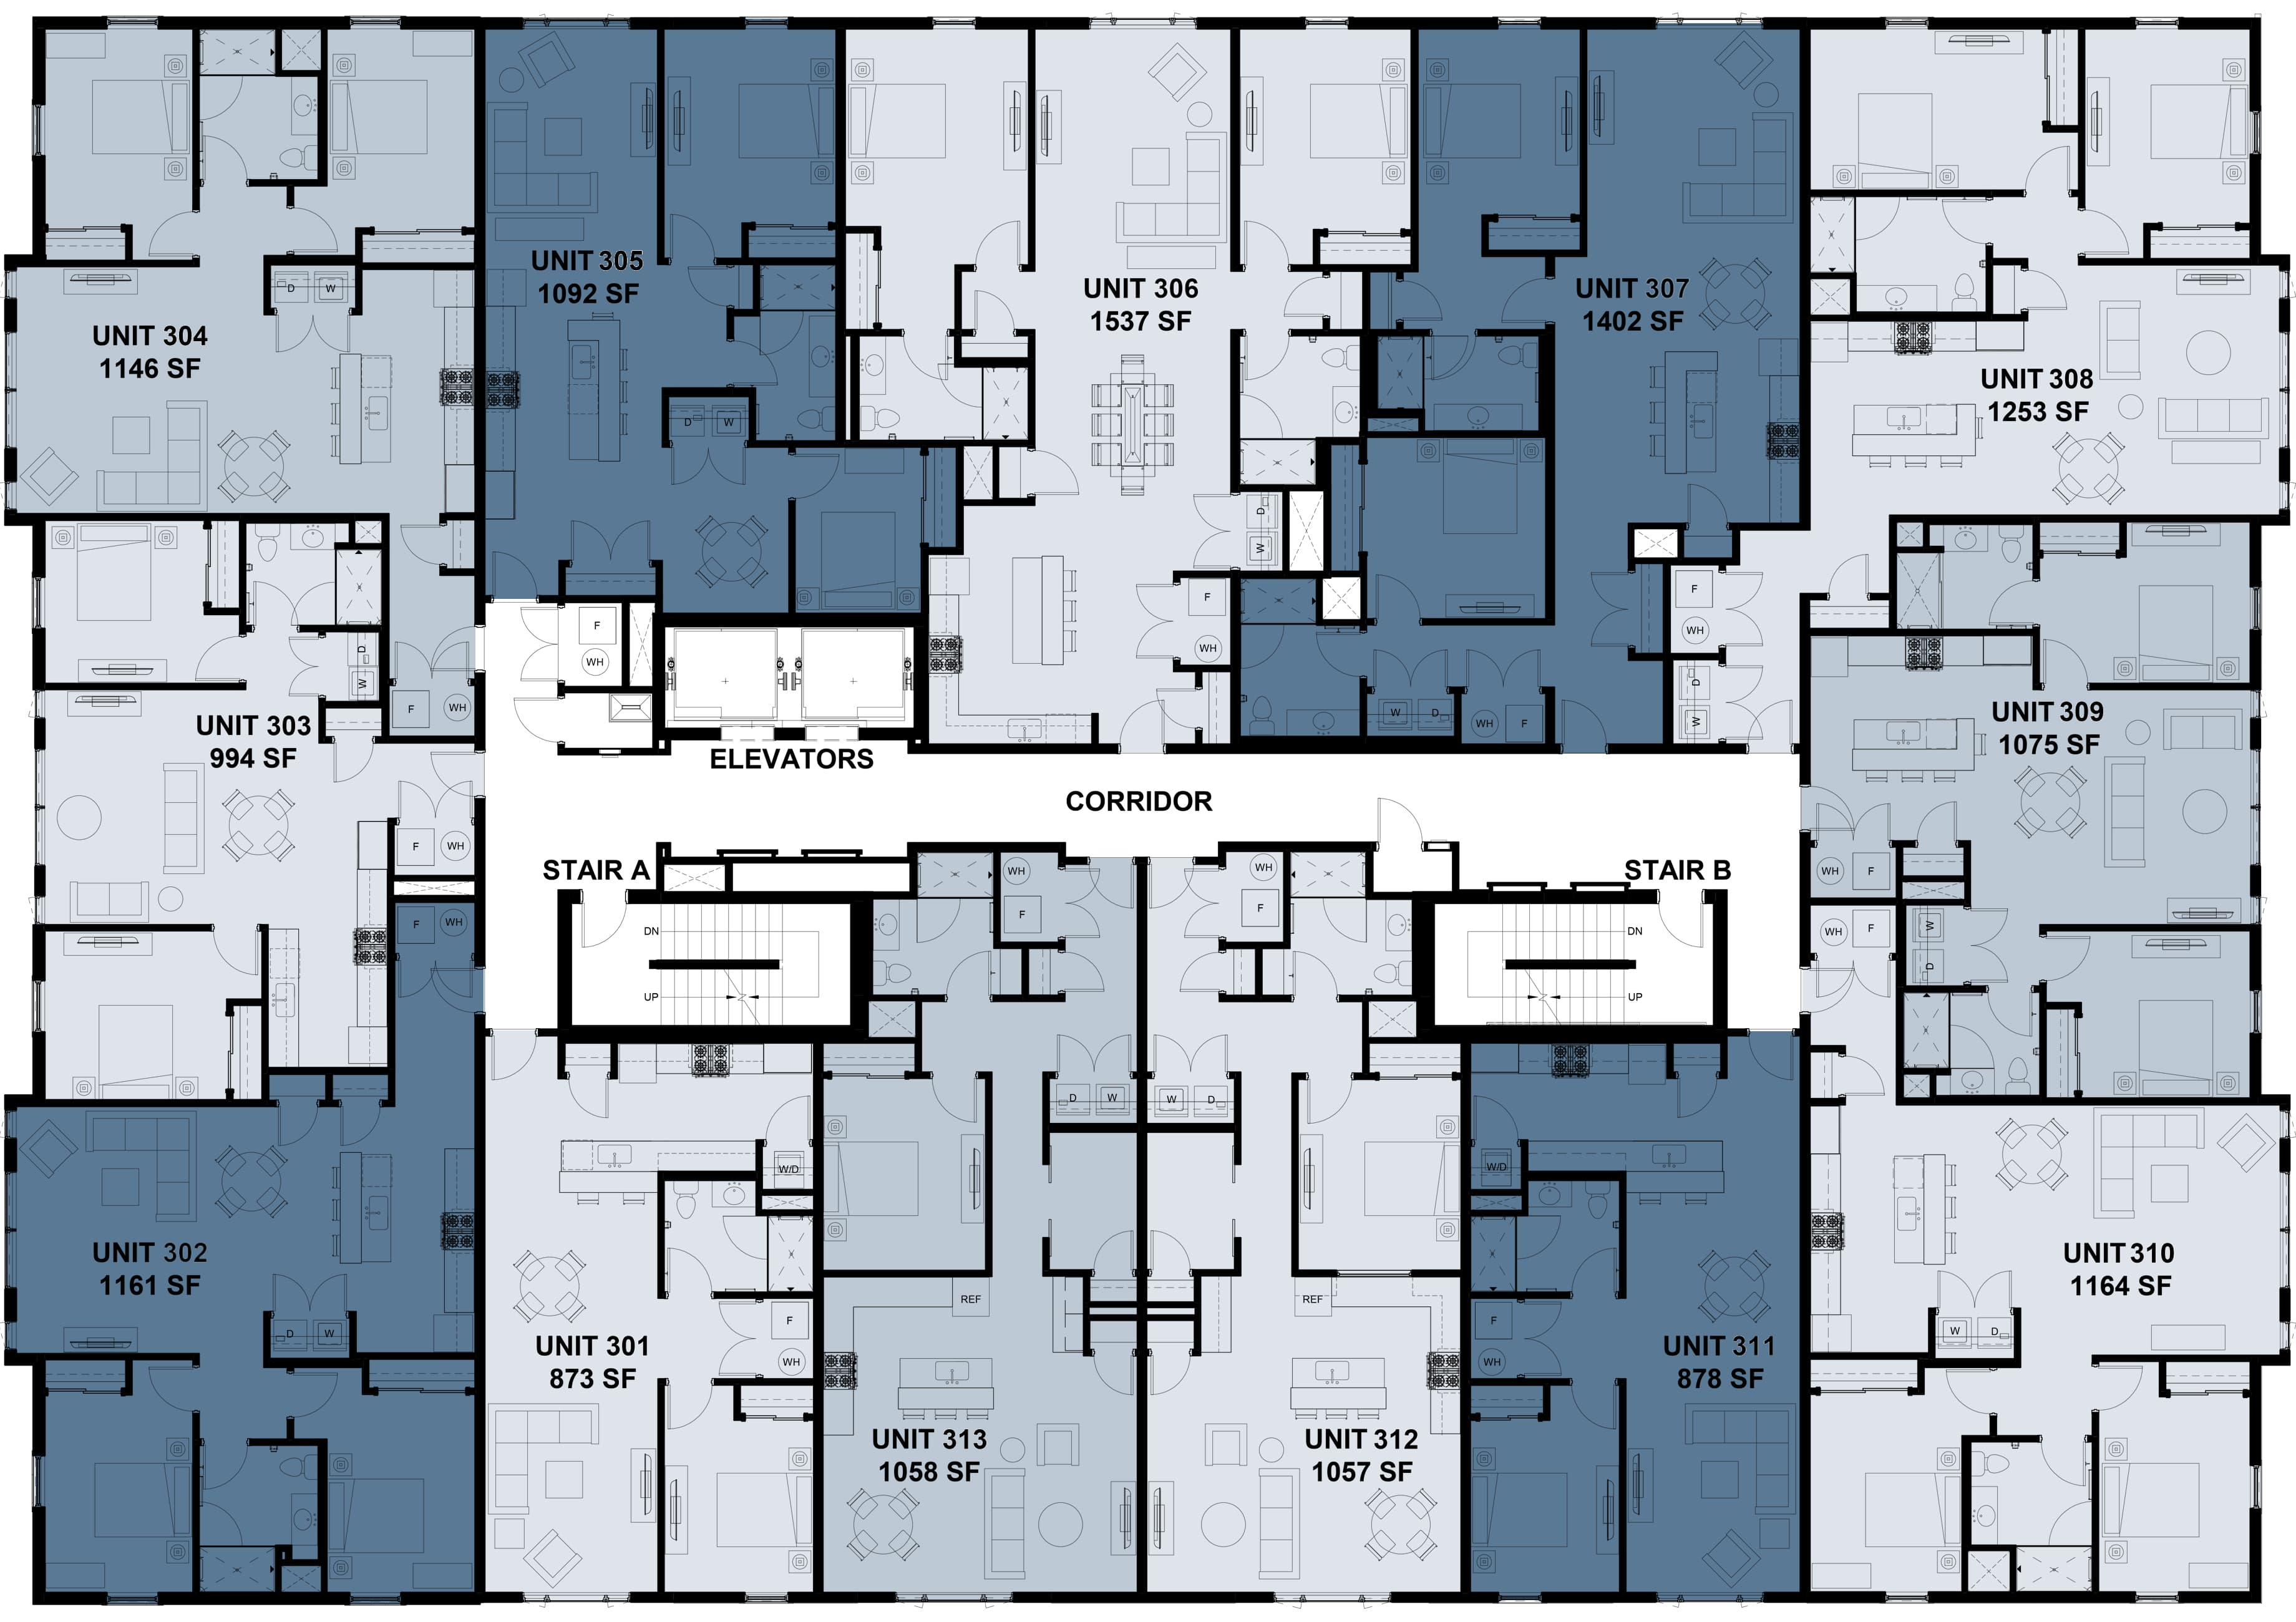 Plans for the Third Floor